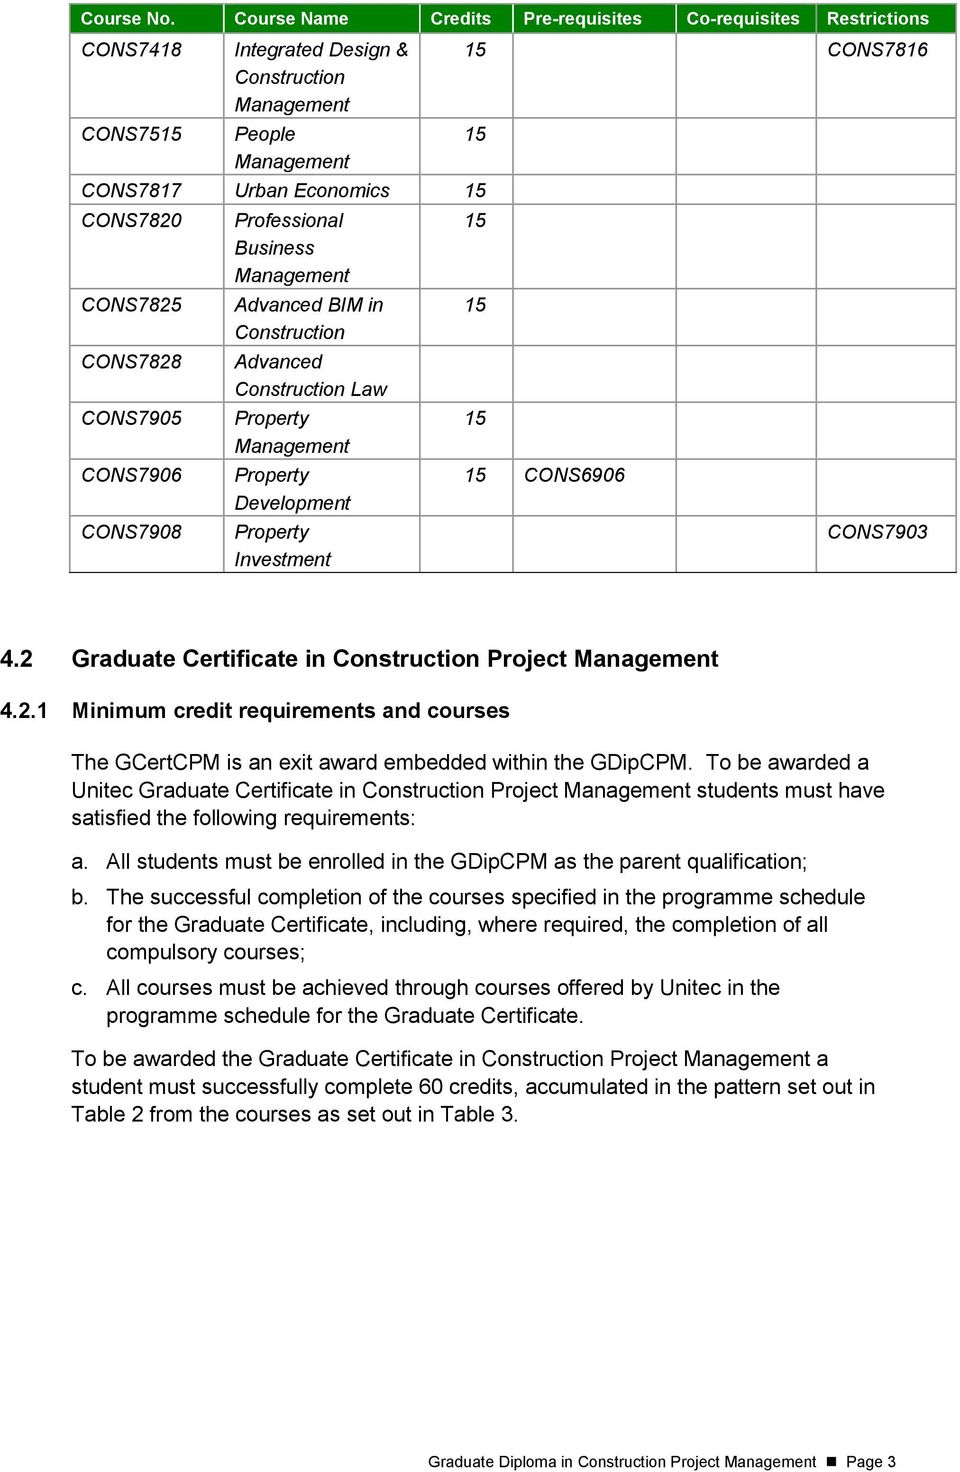 Professional Business BIM in Law Development Investment CONS6906 CONS7903 4.2 Graduate Certificate in 4.2.1 Minimum credit requirements and courses The GCertCPM is an exit award embedded within the GDipCPM.